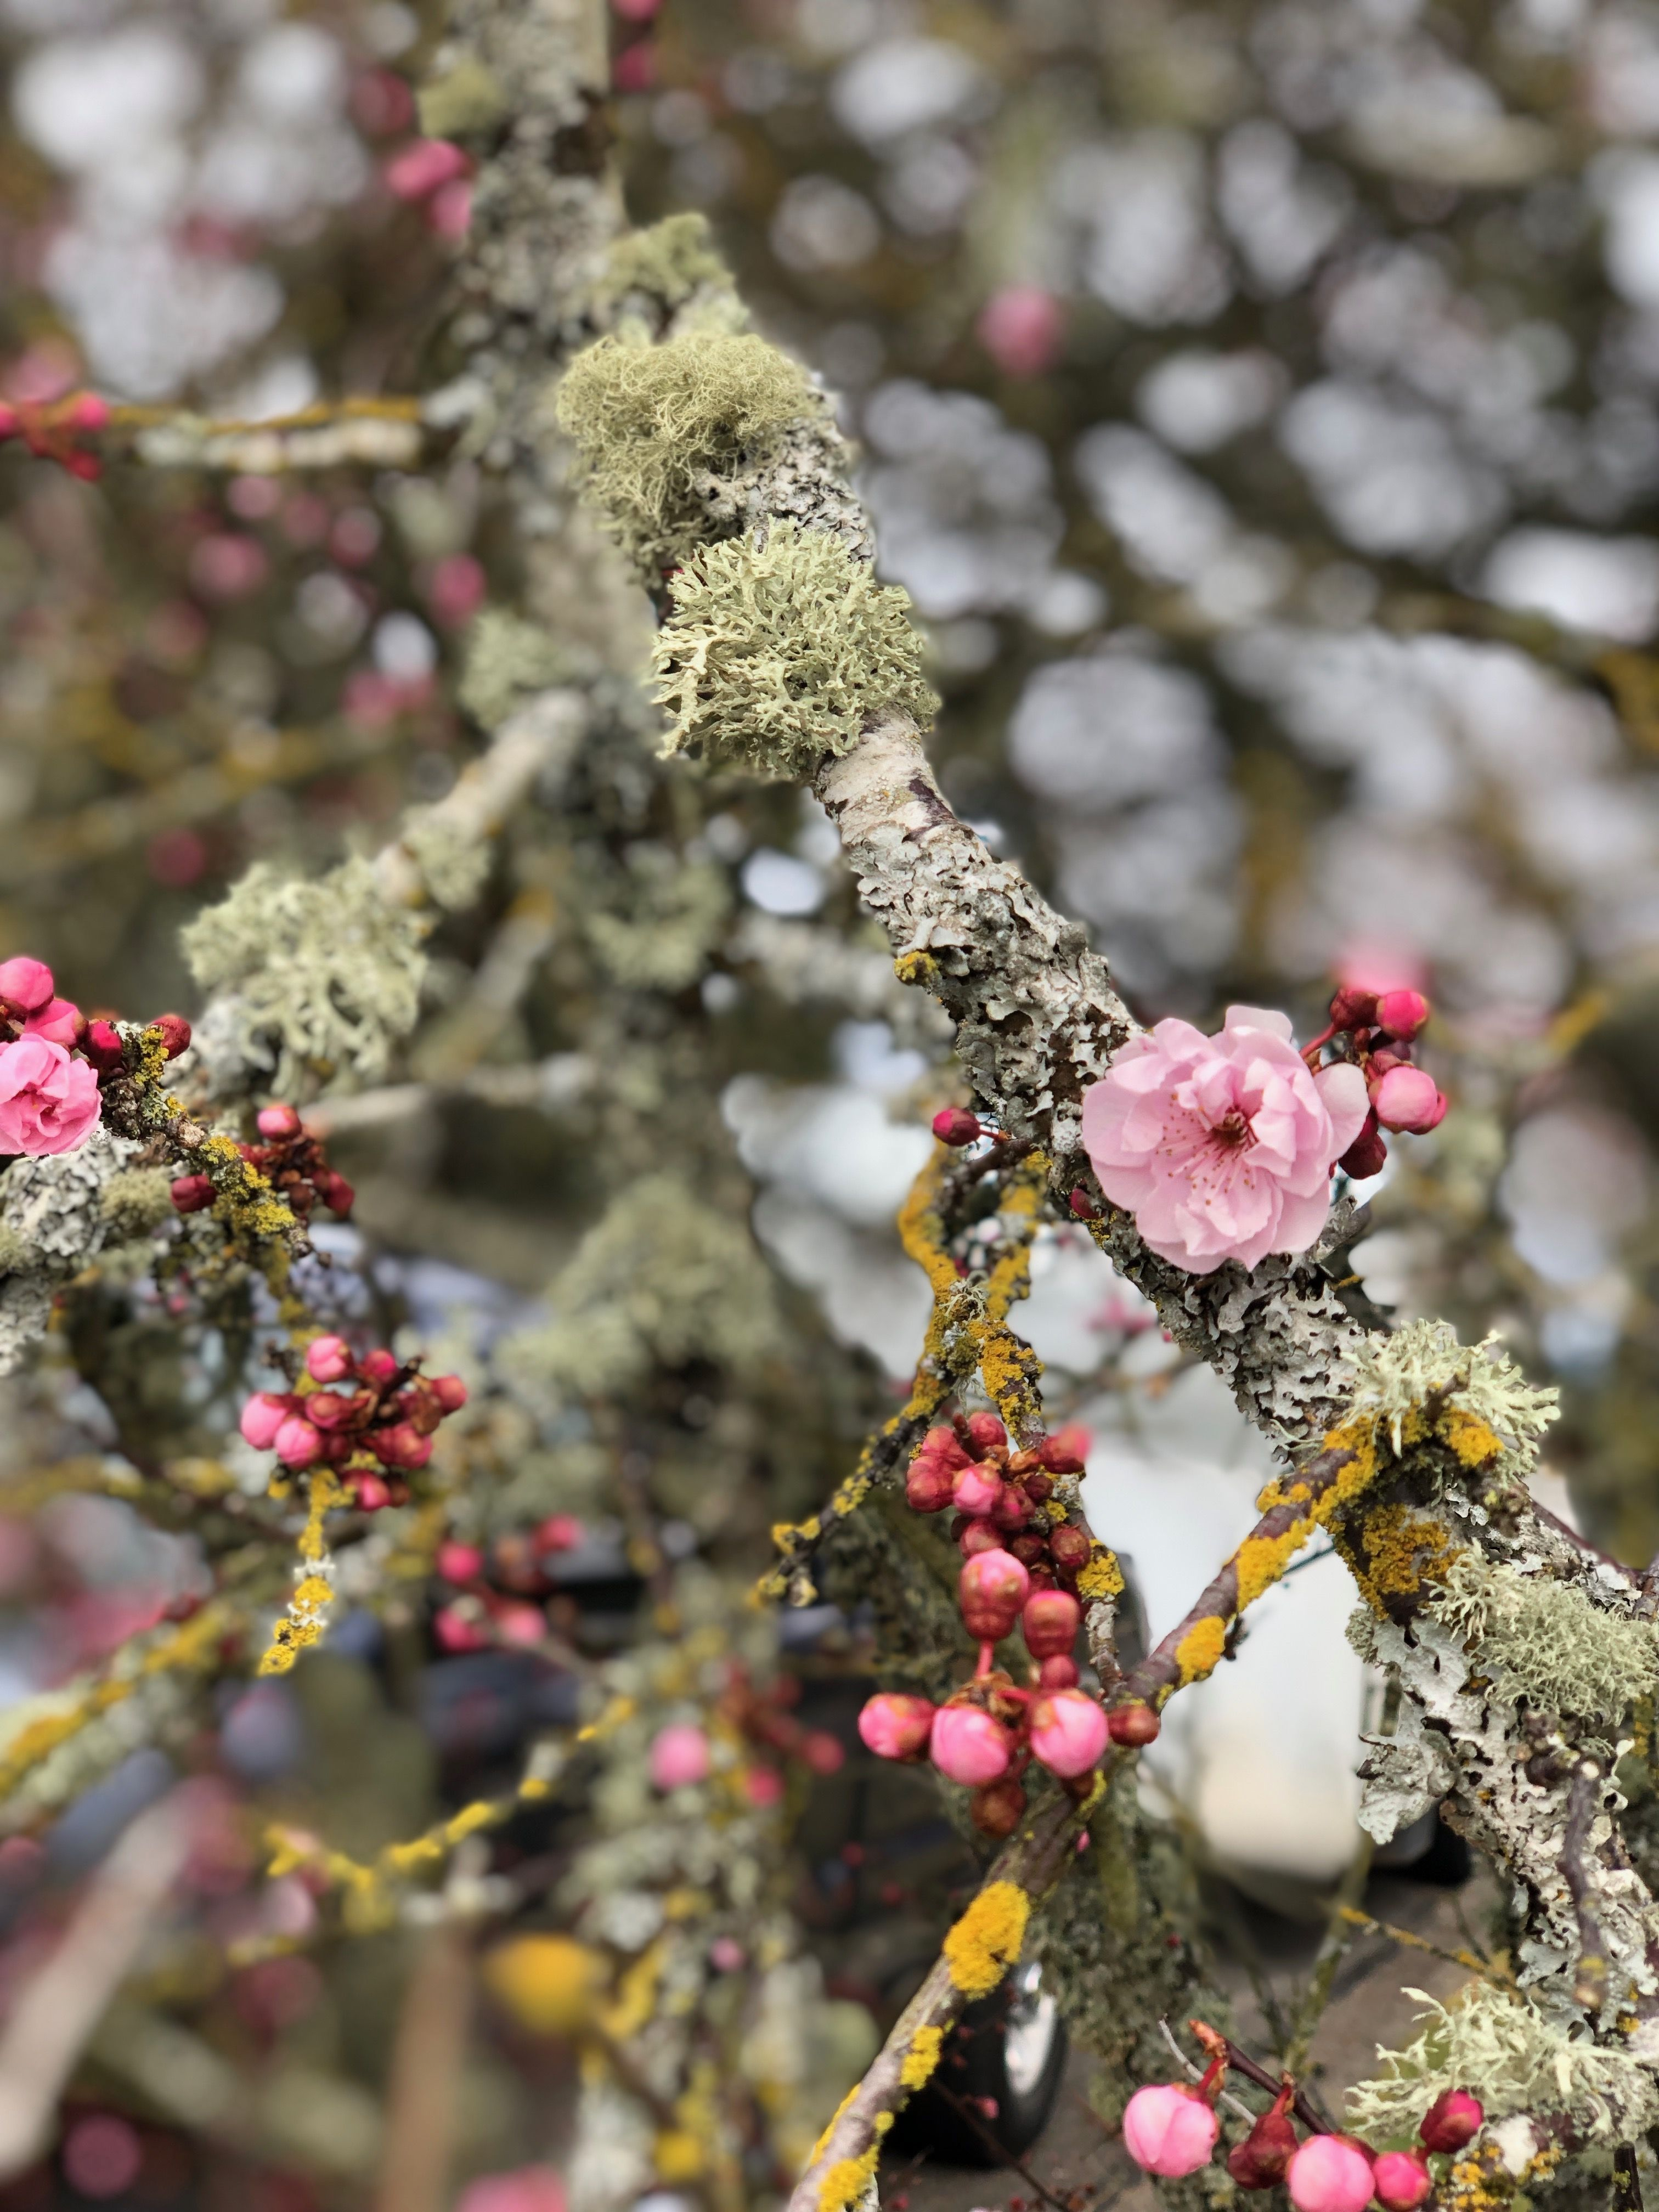 Cherry Blossom And Buds With Lichen Blossom Garden Theme Spring Flowers